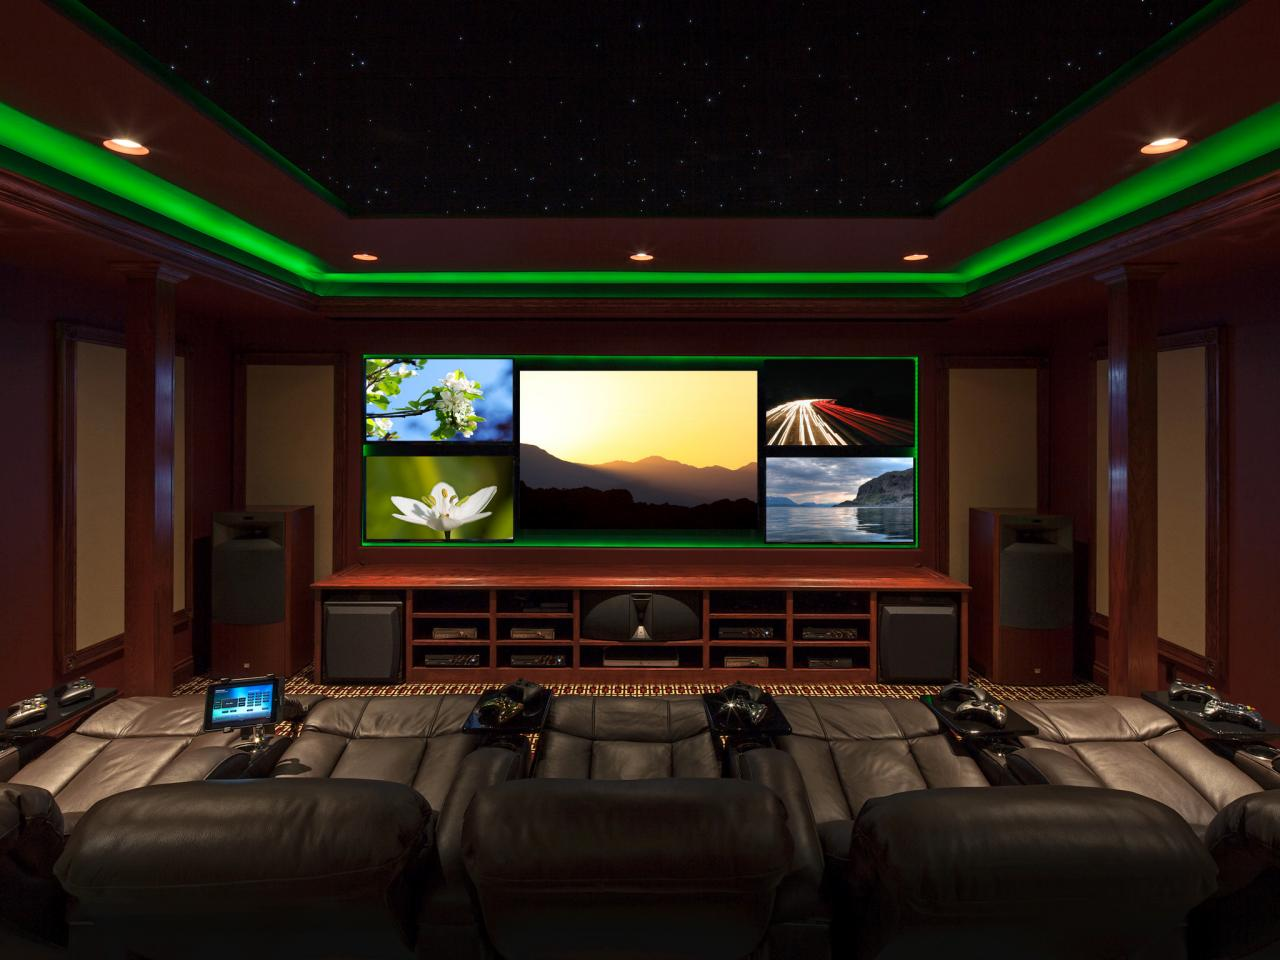 game room lighting. Green Ambient Gamer Room Lighting Game A